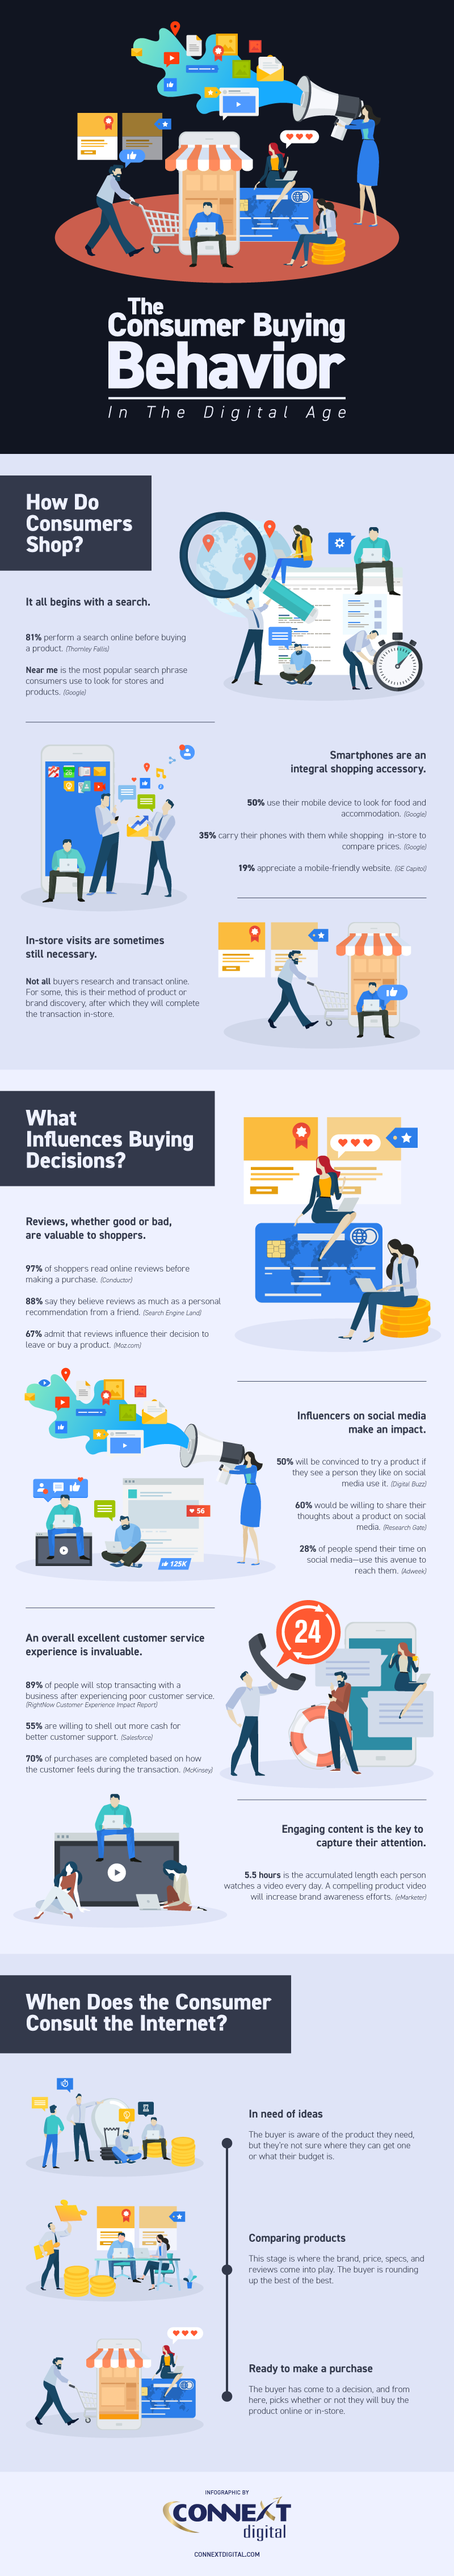 Buying Behavior in the Digital Age: Valuable Consumer Insights - Infographic